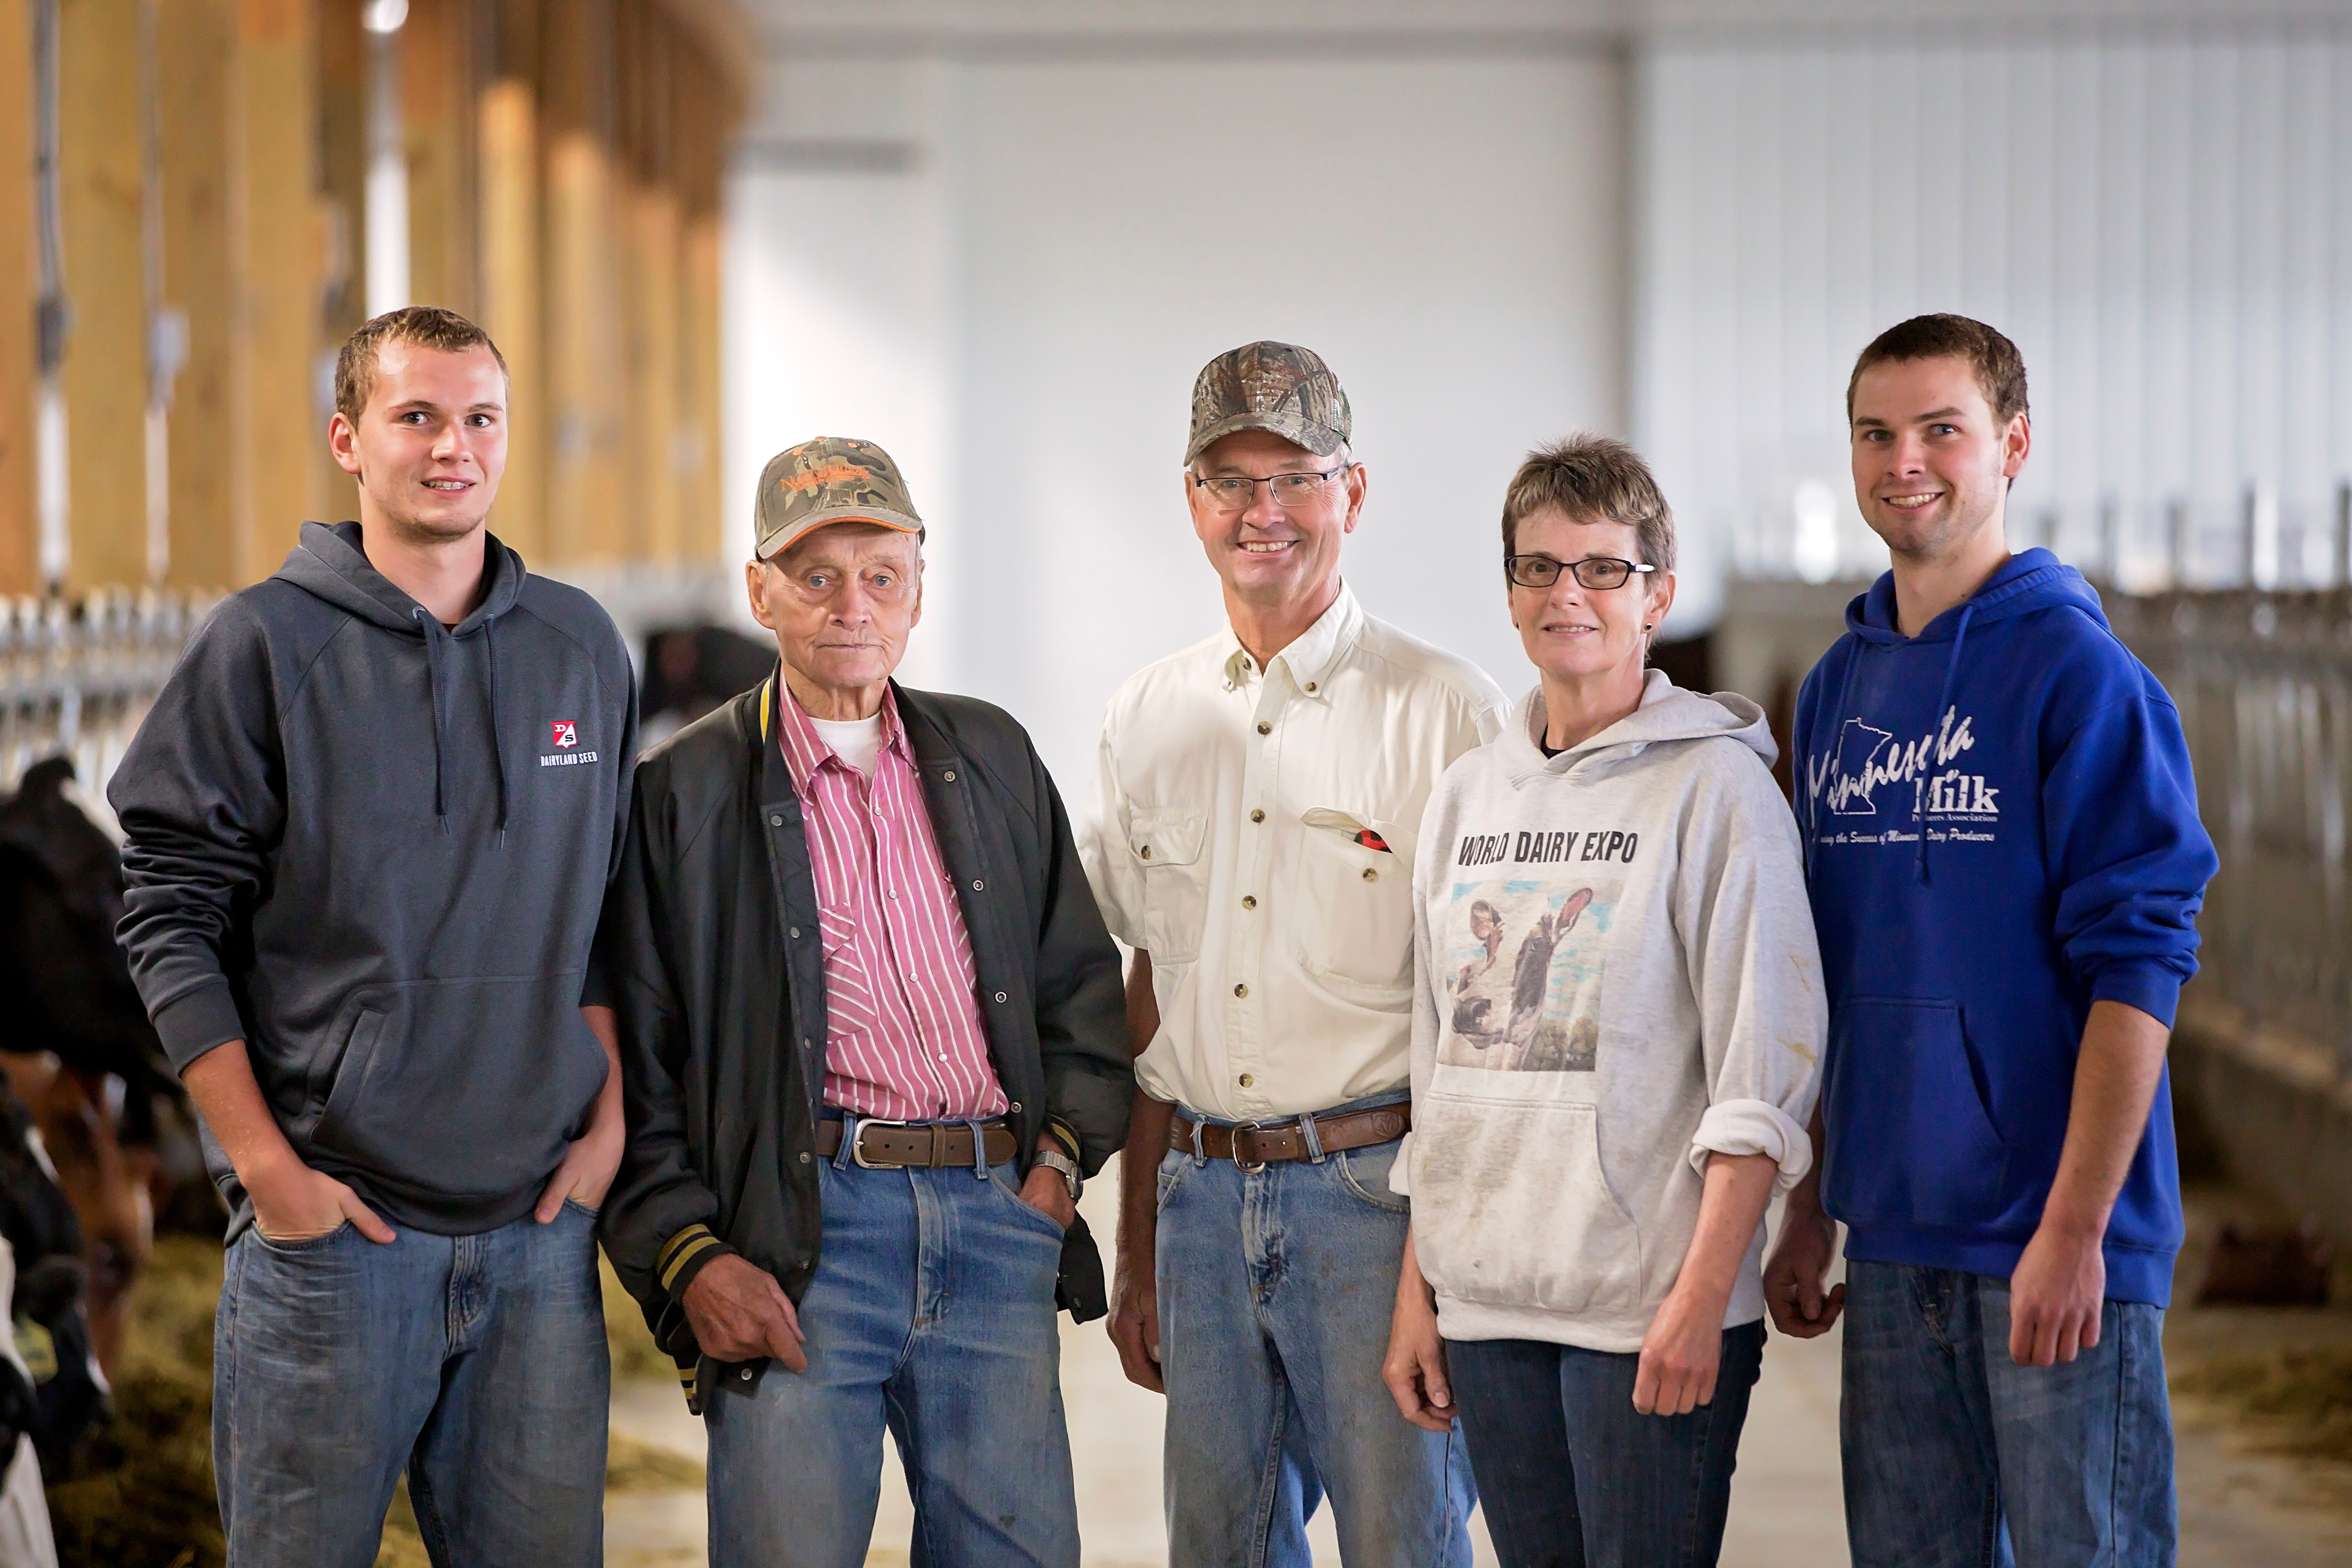 The Hansons chose to join the ranks of dairy automation and have built a new, free-stall barn that boasts two Lely Astronaut A4 automated milking systems, a Lely Vector, three Lely Luna cow brushes and the Lely dairy herd management software, T4C (Time for Cows).